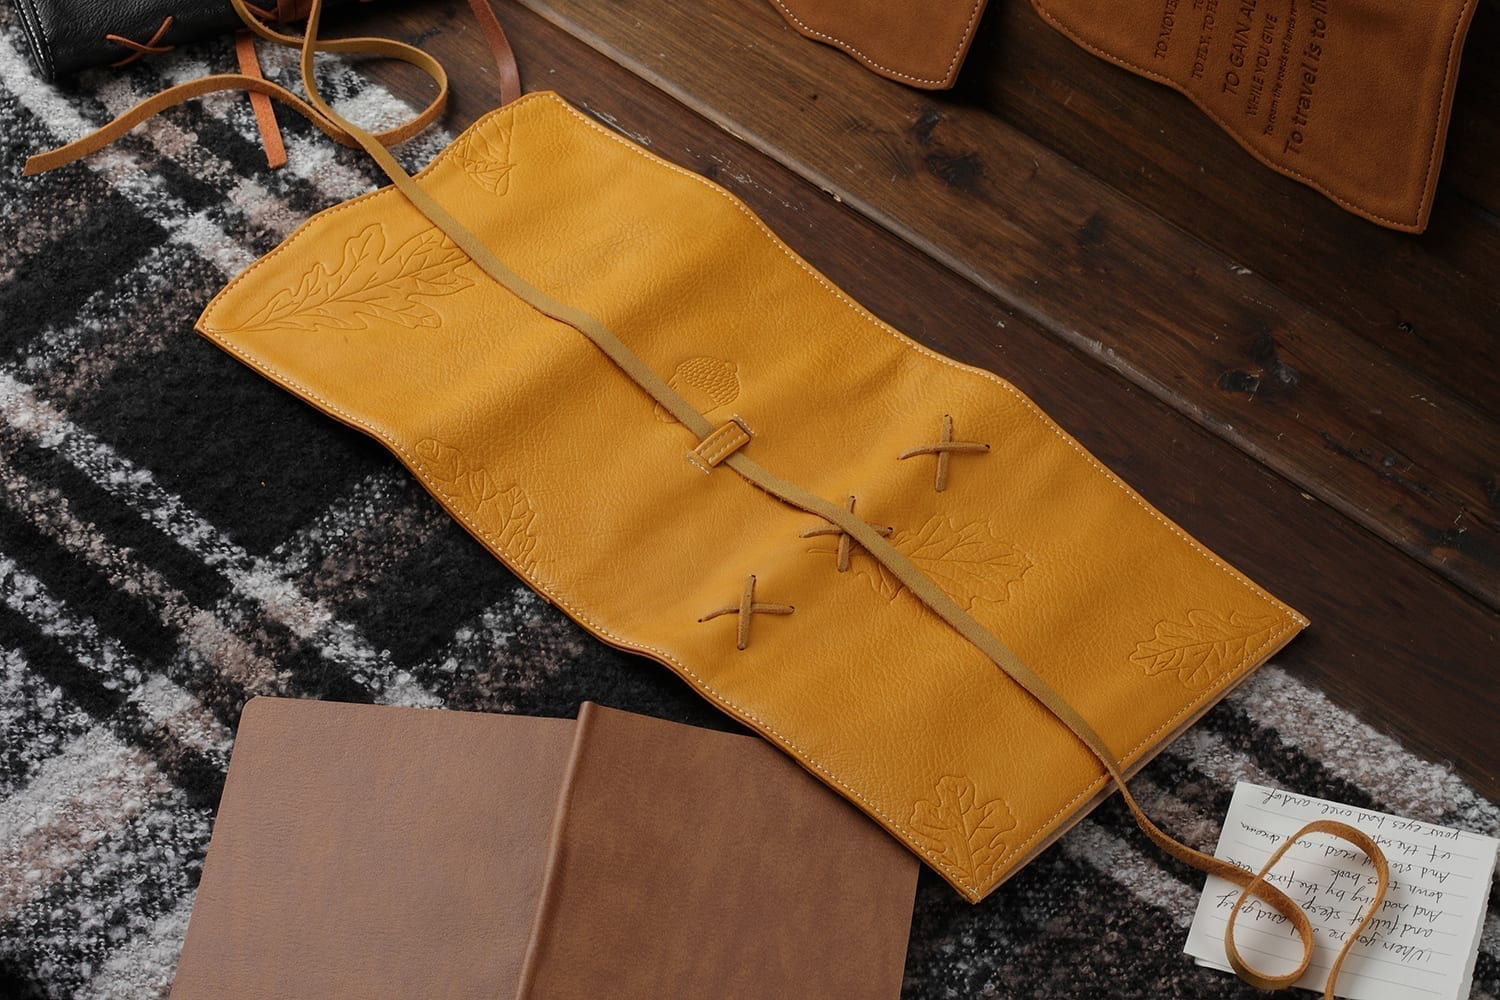 soft yellow leather journal cover embossed with oak leaves